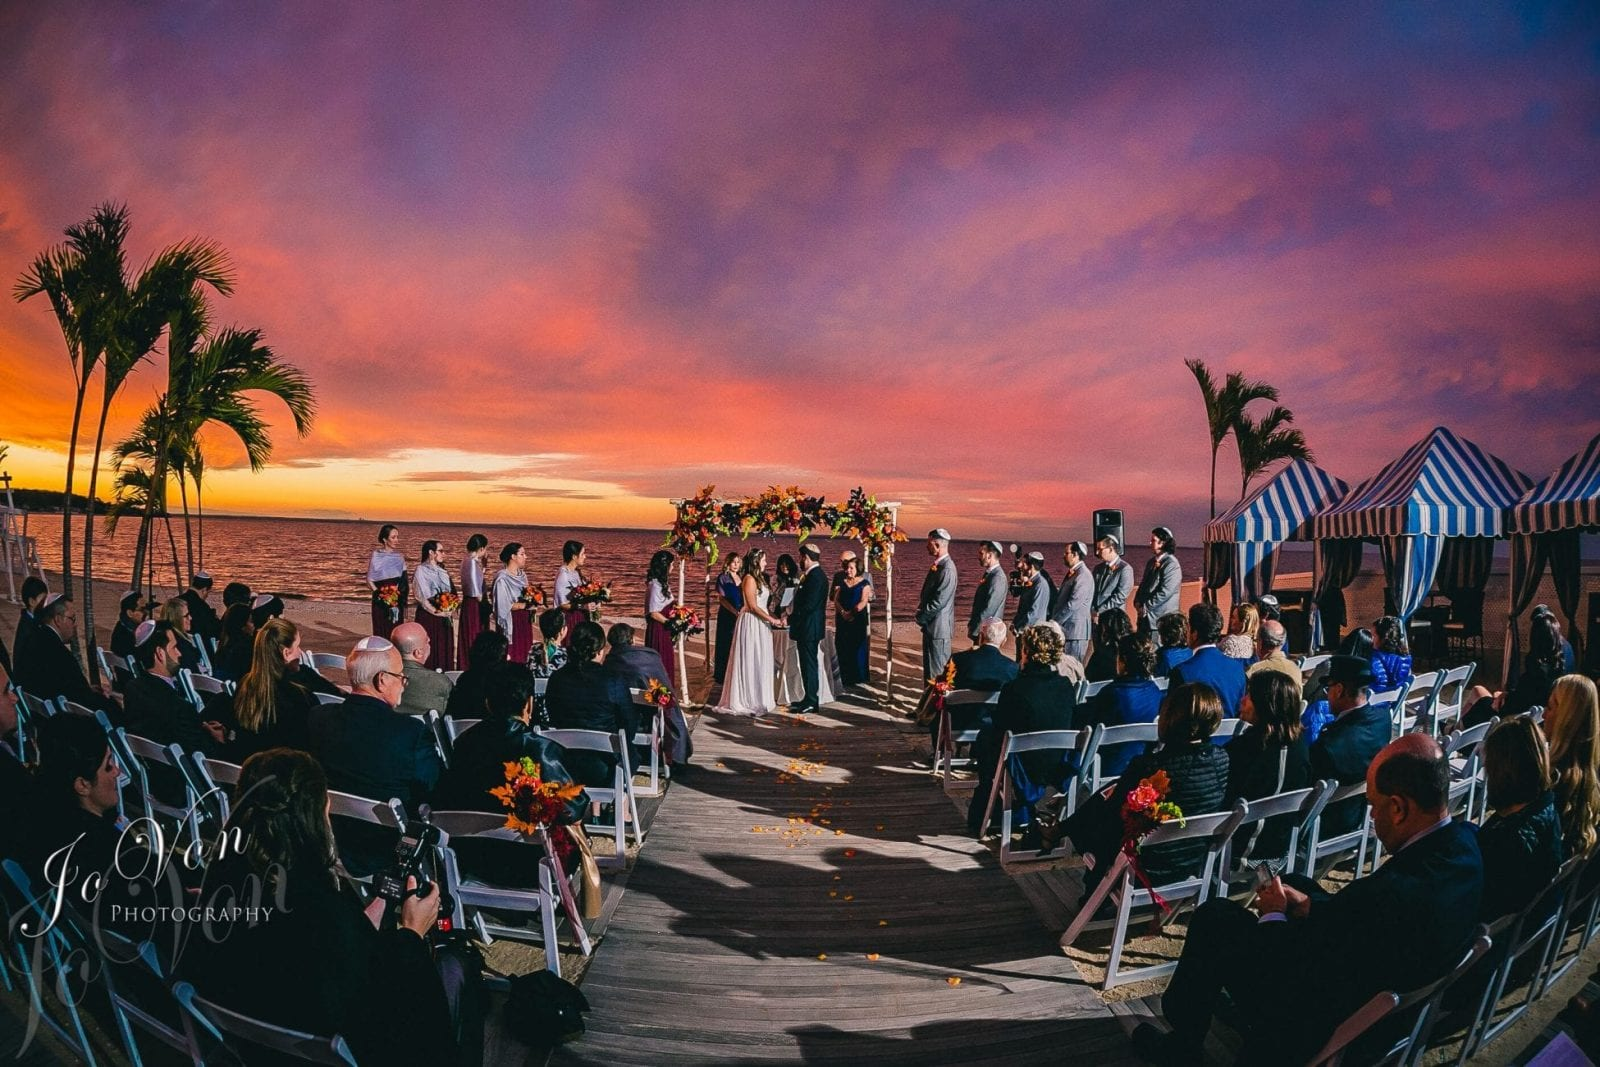 Wedding ceremony in progress on the beach of the Crescent Beach Club as the sun sets over the water